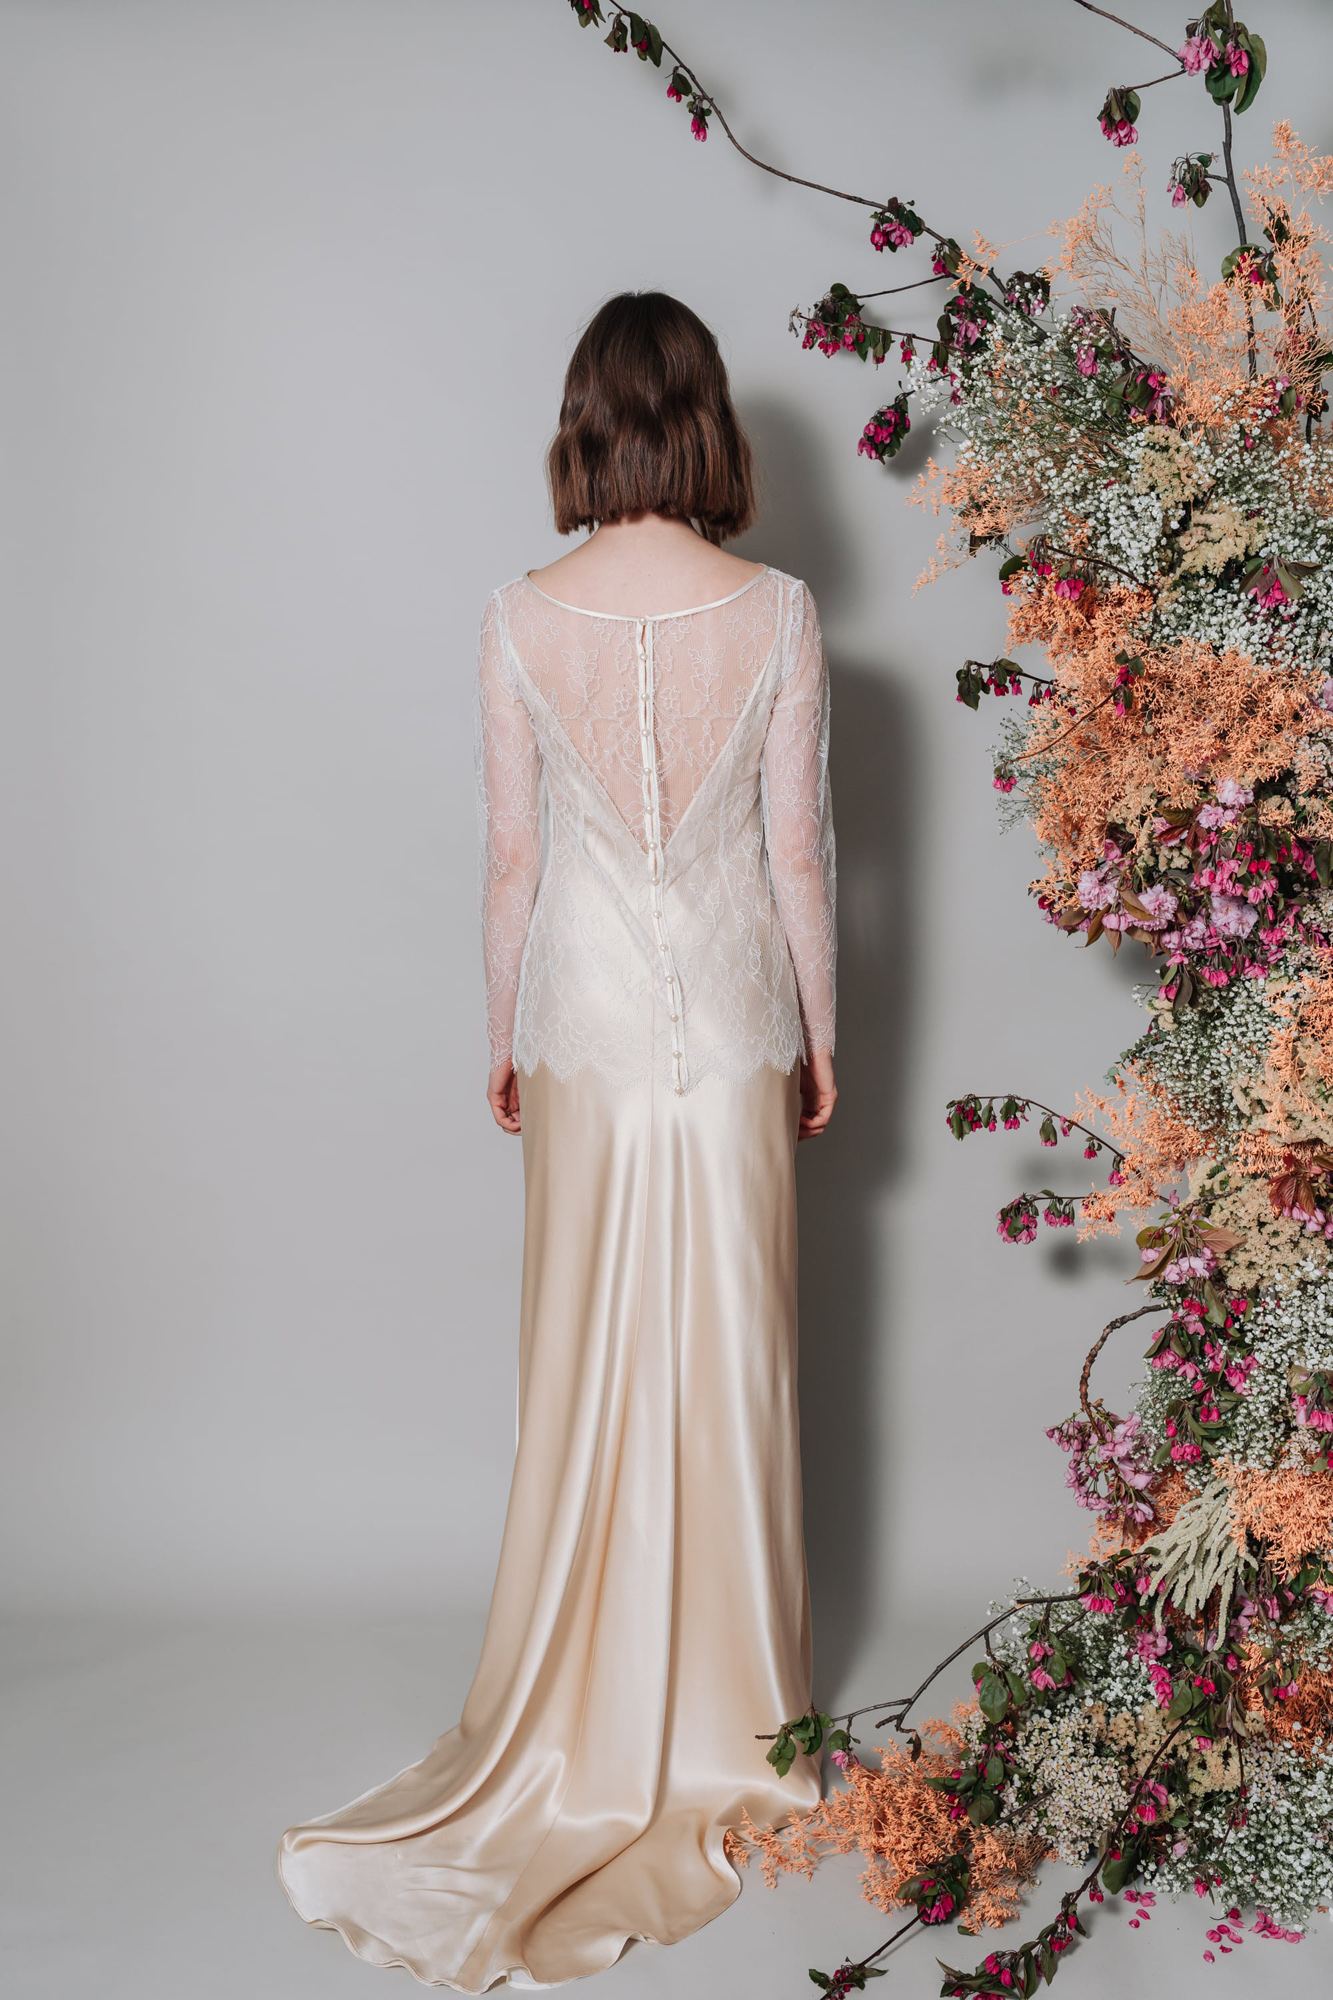 Kate-Beaumont-Sheffield-Thistle-Bridal-Separates-Two-Piece-Lace-Silk-Wedding-Gown-16.jpg